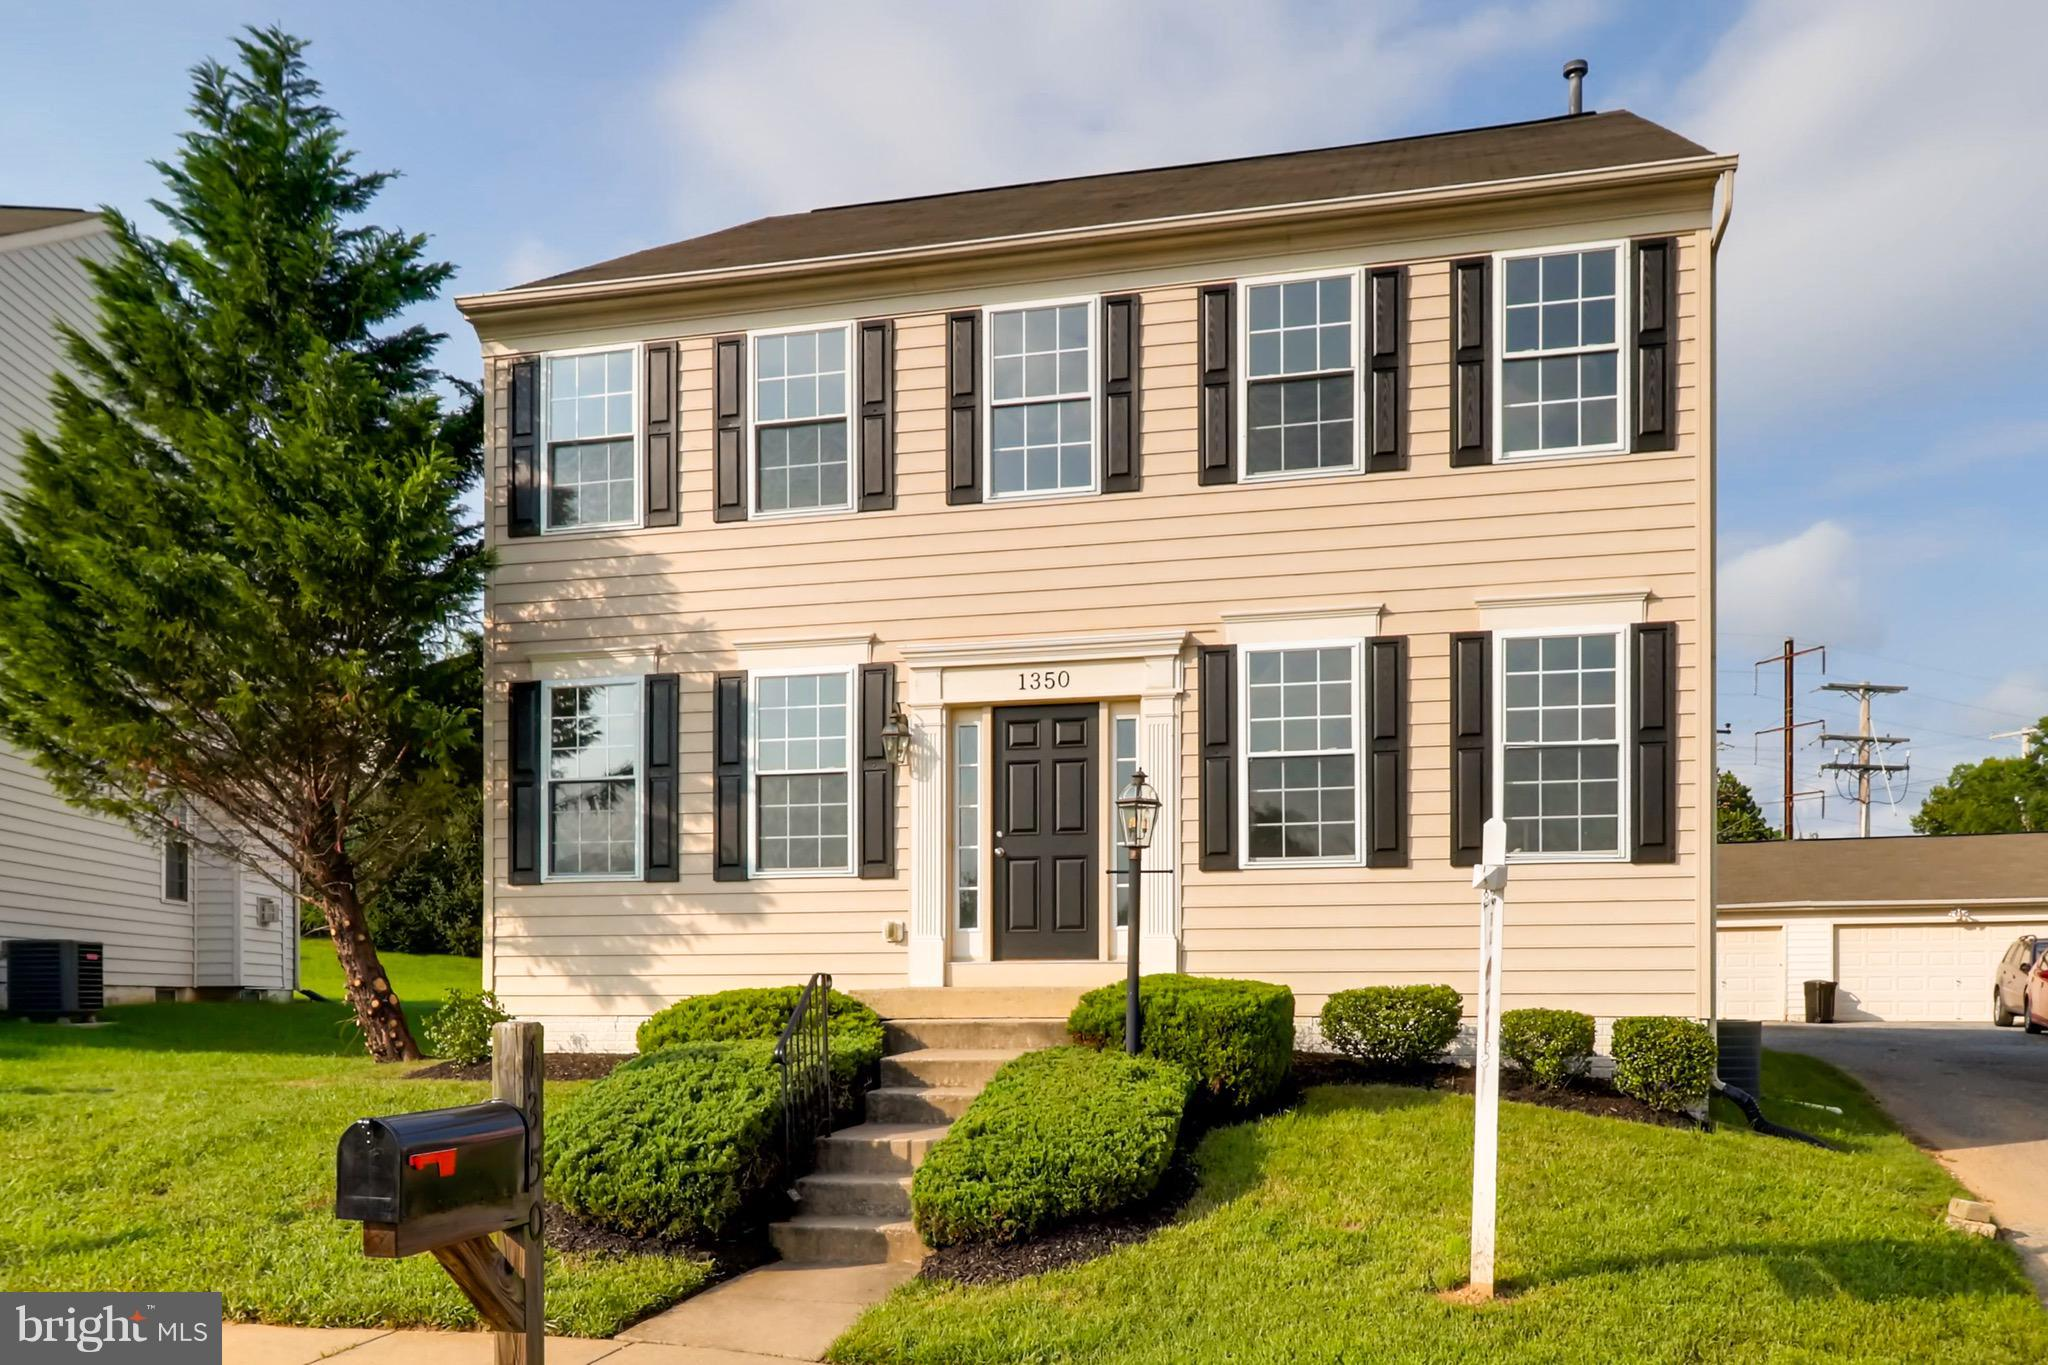 1350 CANBERRA DRIVE, BALTIMORE, MD 21221